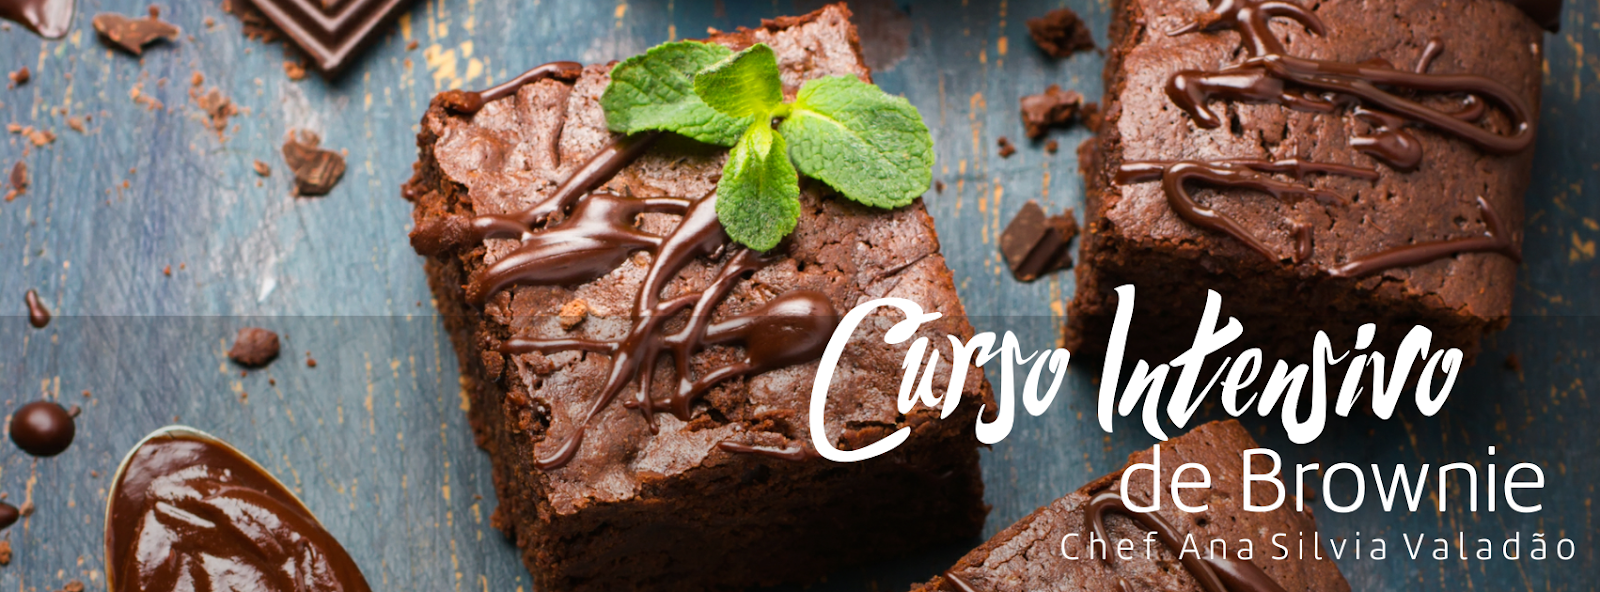 Curso Online Intensivo de Brownies